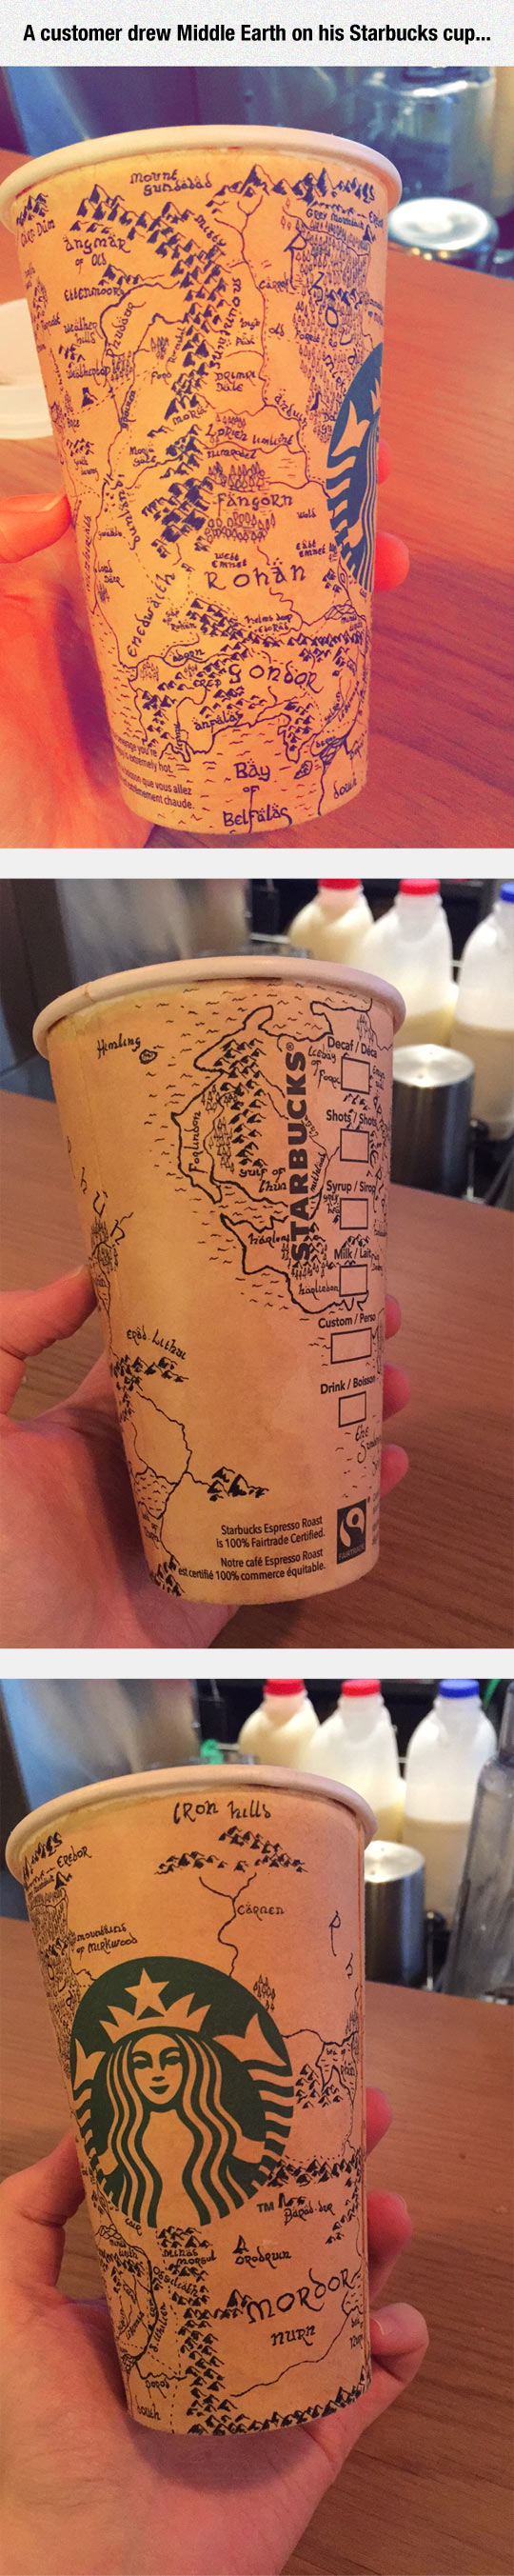 cool-middle-Earth-Starbucks-cup-drawing